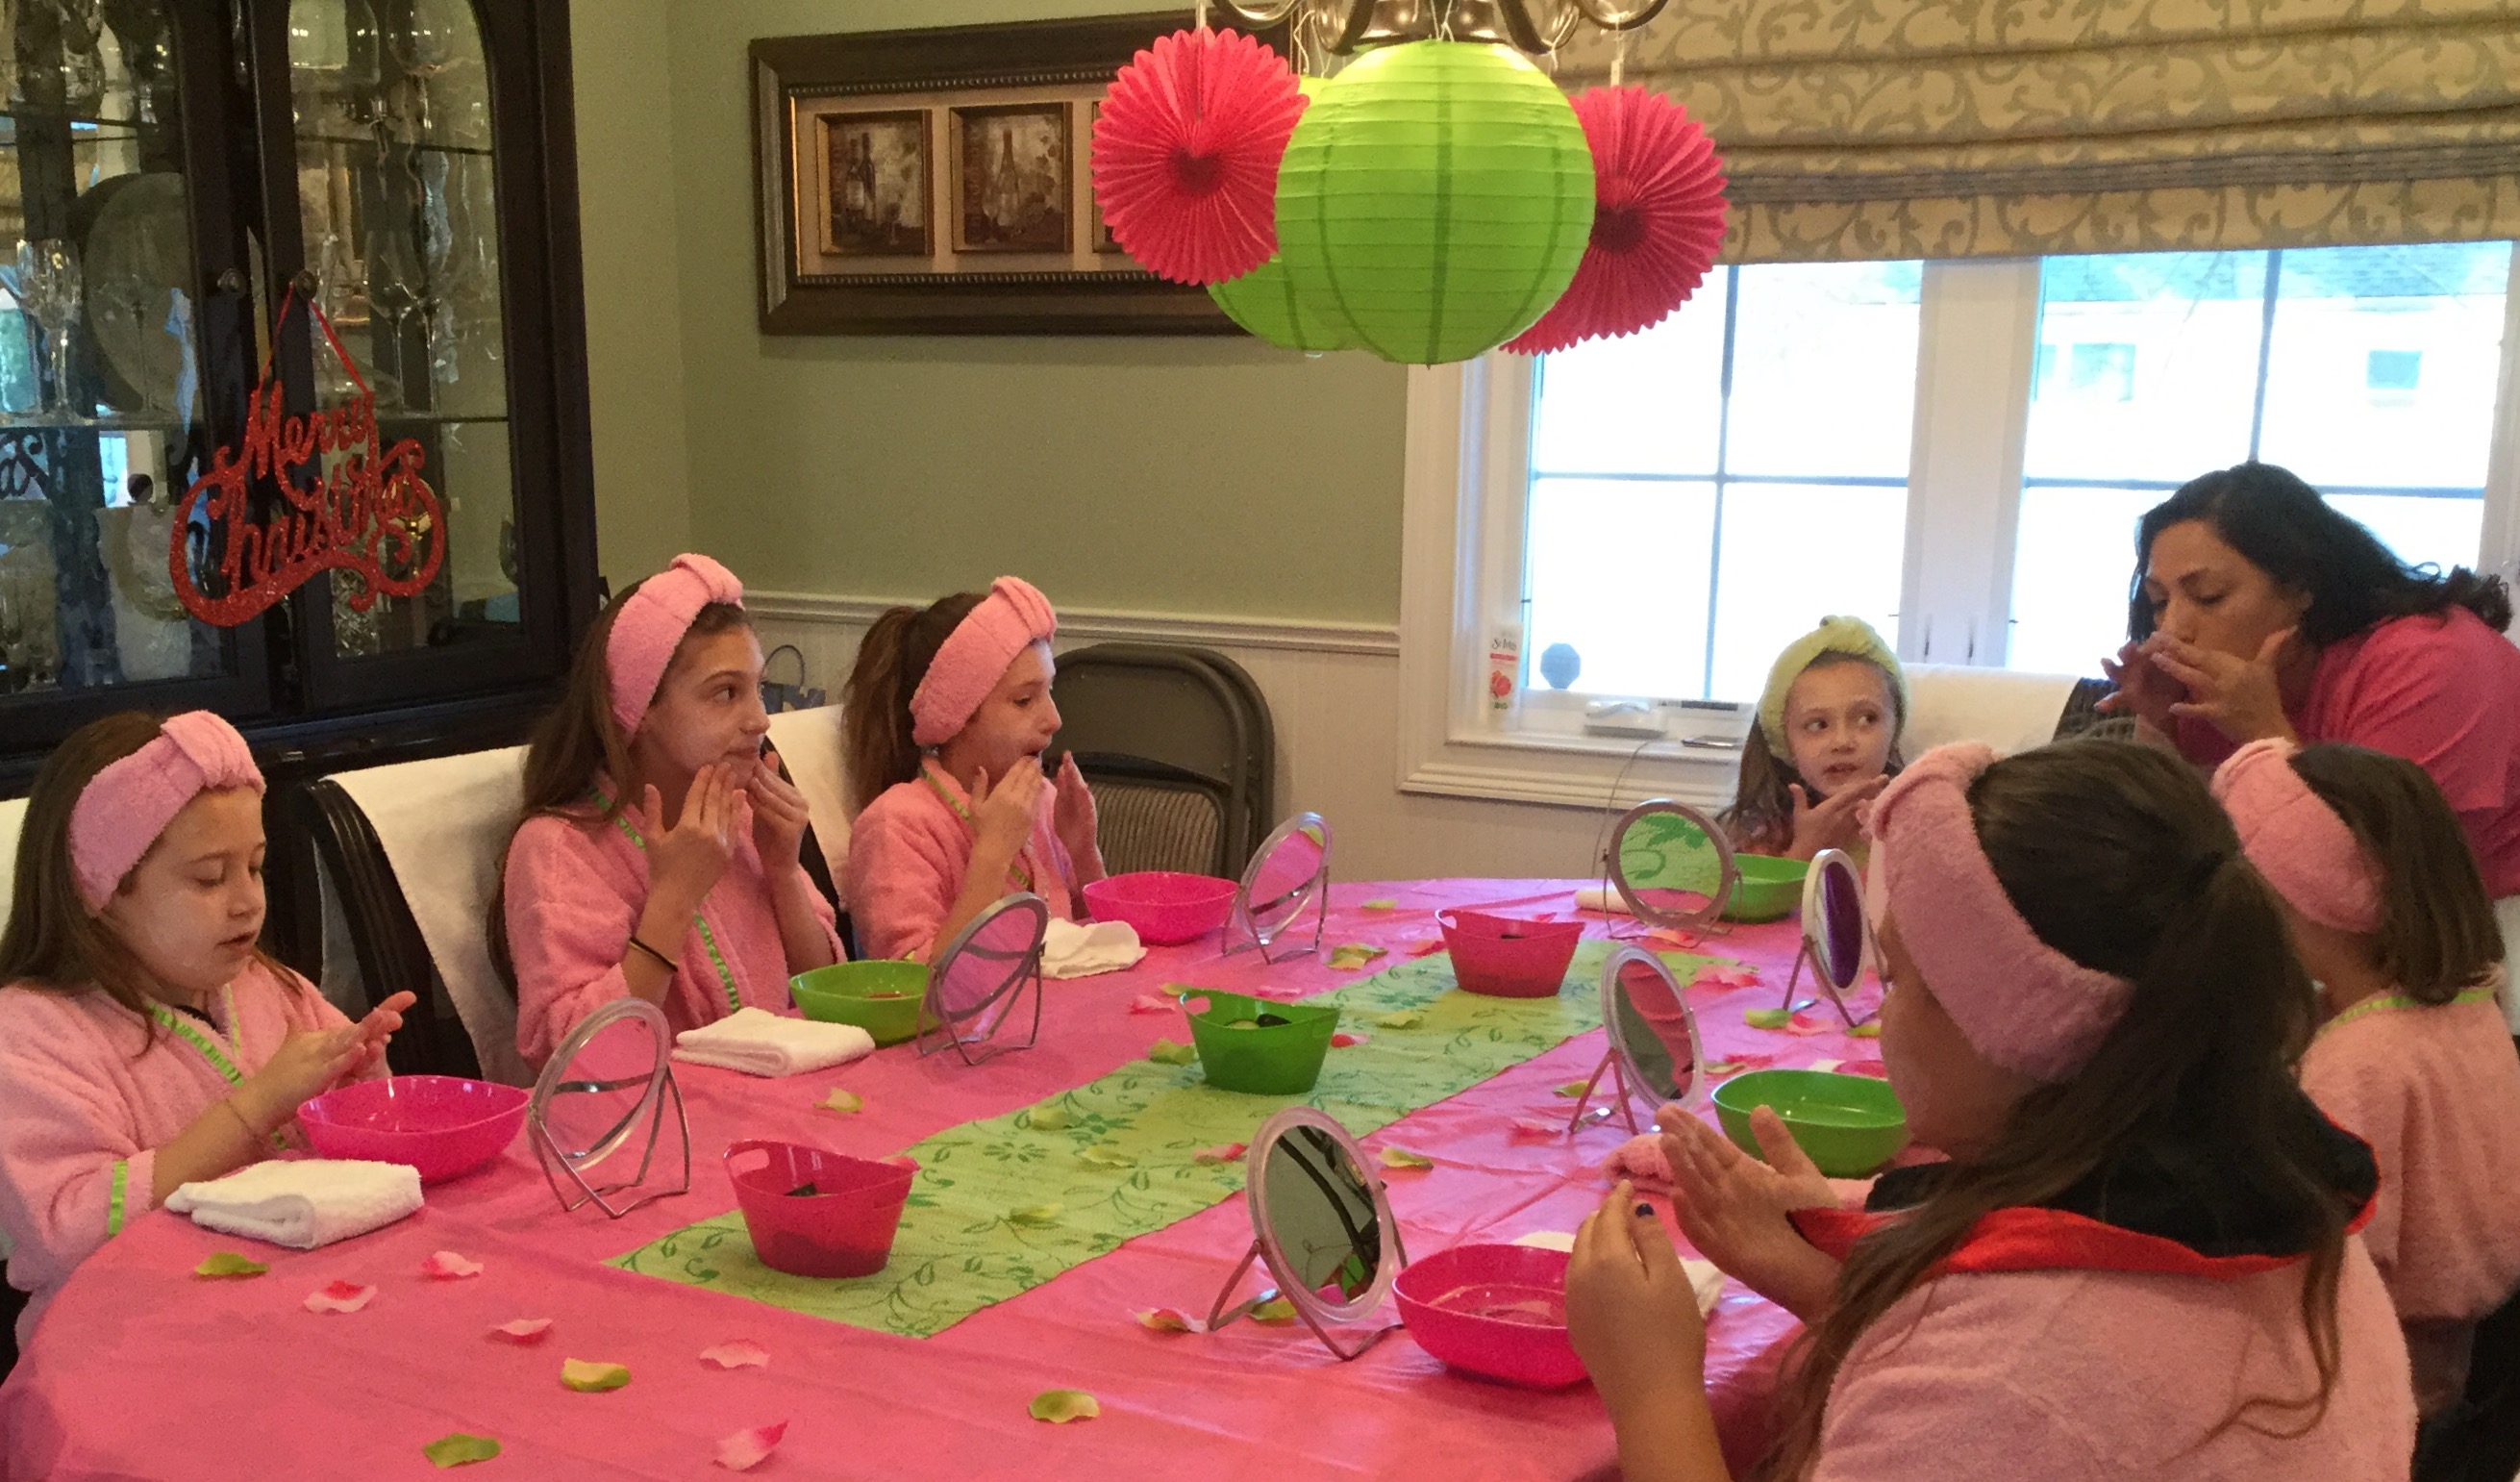 SPA PARTIES FOR LITTLE GIRLS AND TEENS - Lala Lil